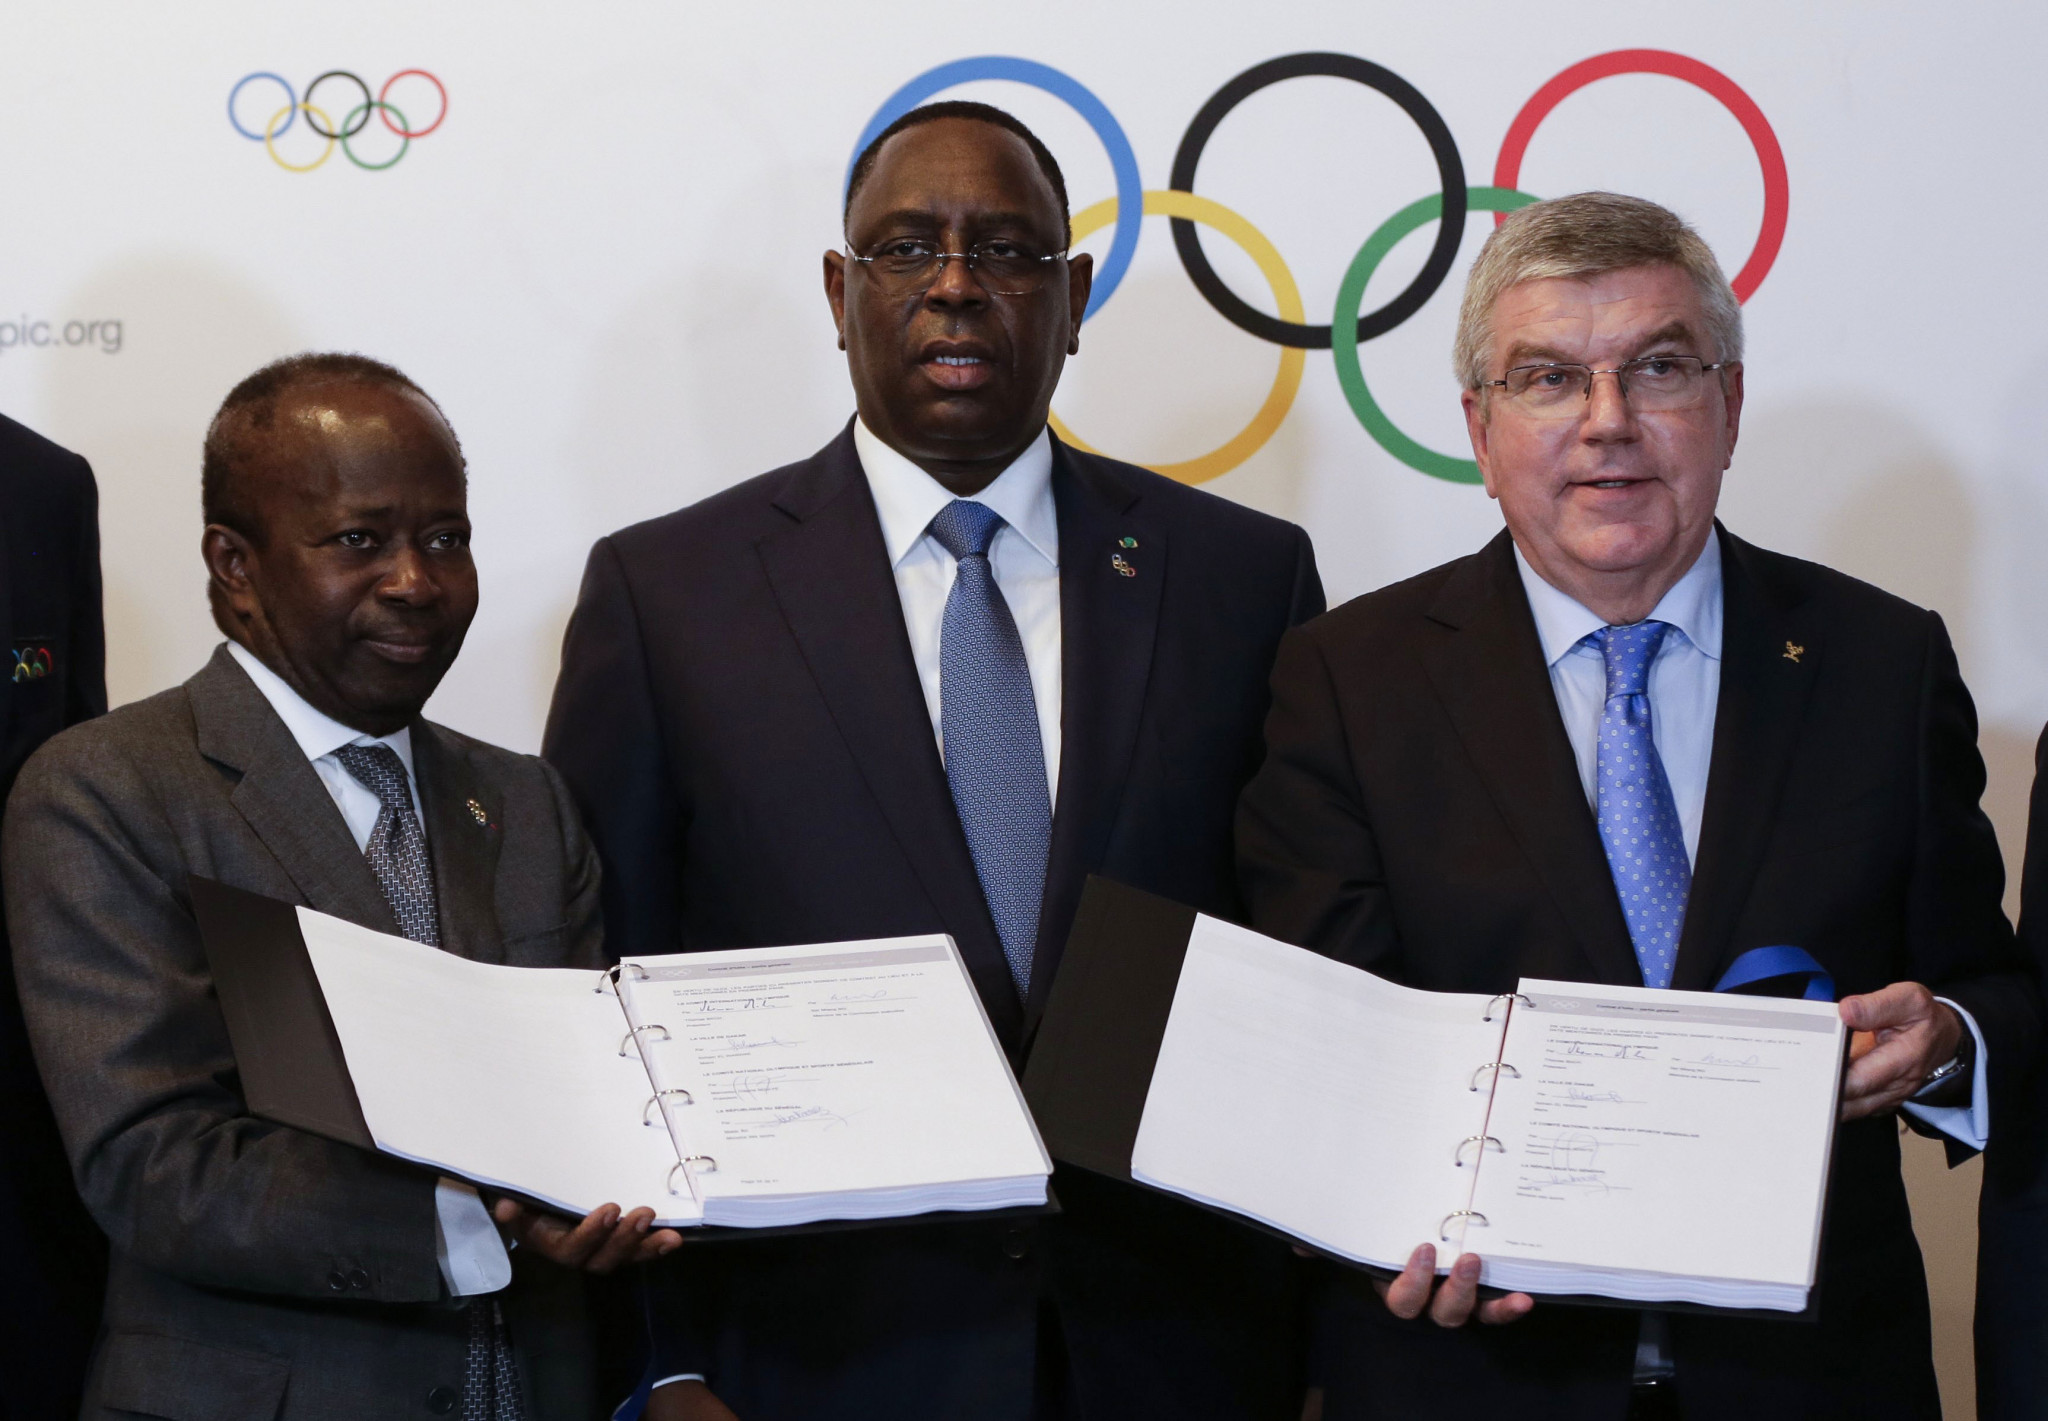 Olympic education is planned in Shantou following the delay to the Dakar 2022 Summer Youth Olympics ©Getty Images